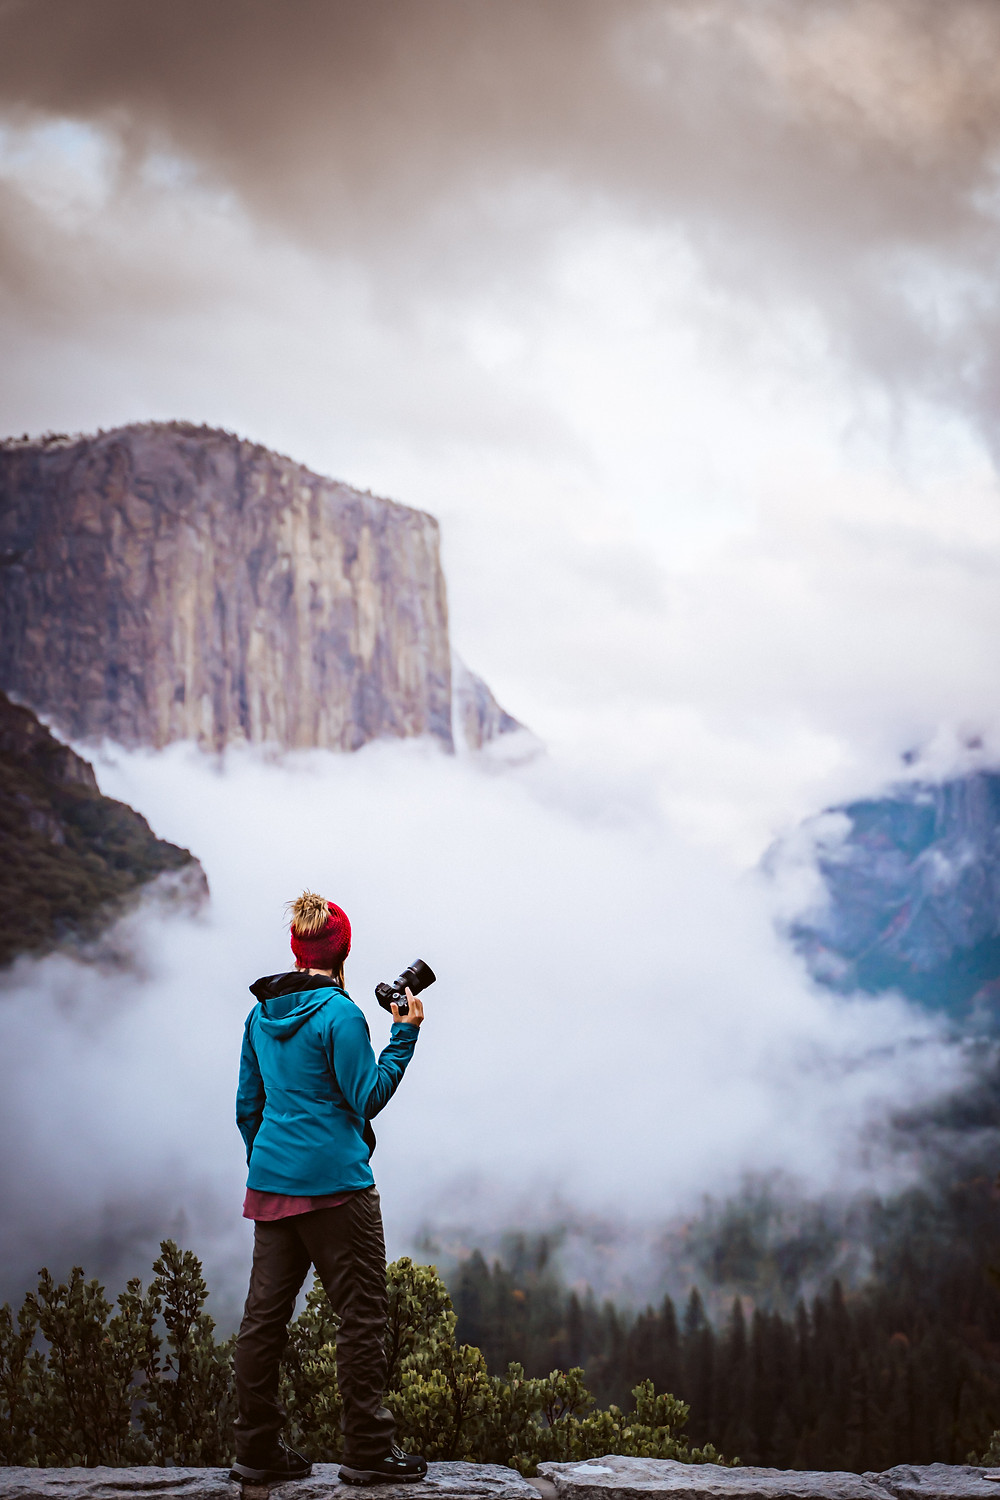 A girl holding a camera standing on the ledge and overlooking Yosemite Valley with Fog surrounding all around the base of El Capitan at Yosemite National Park